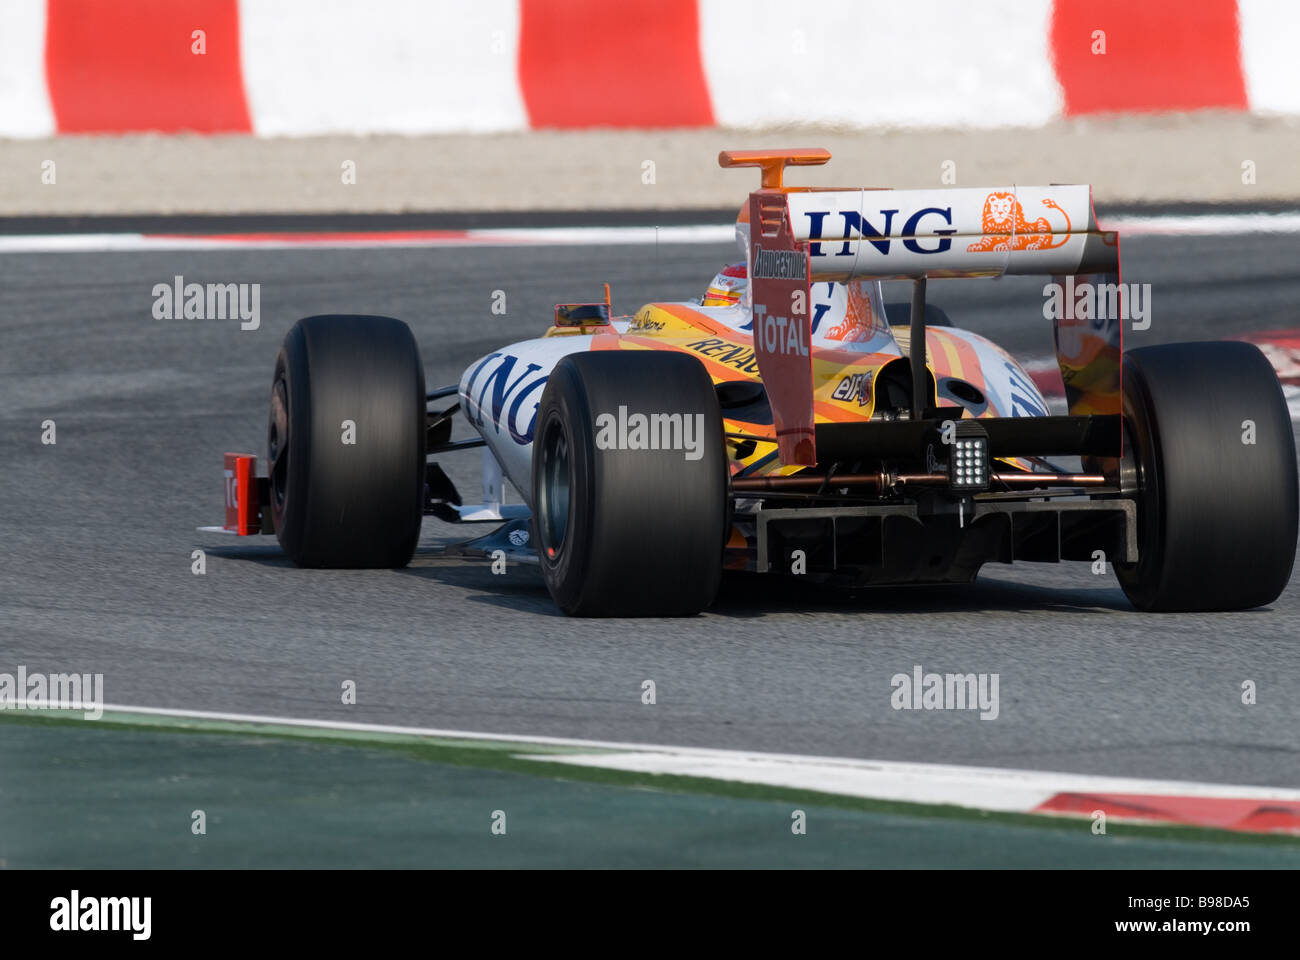 Motorsport; Race; Racing; car; carrace; racecar - Stock Image